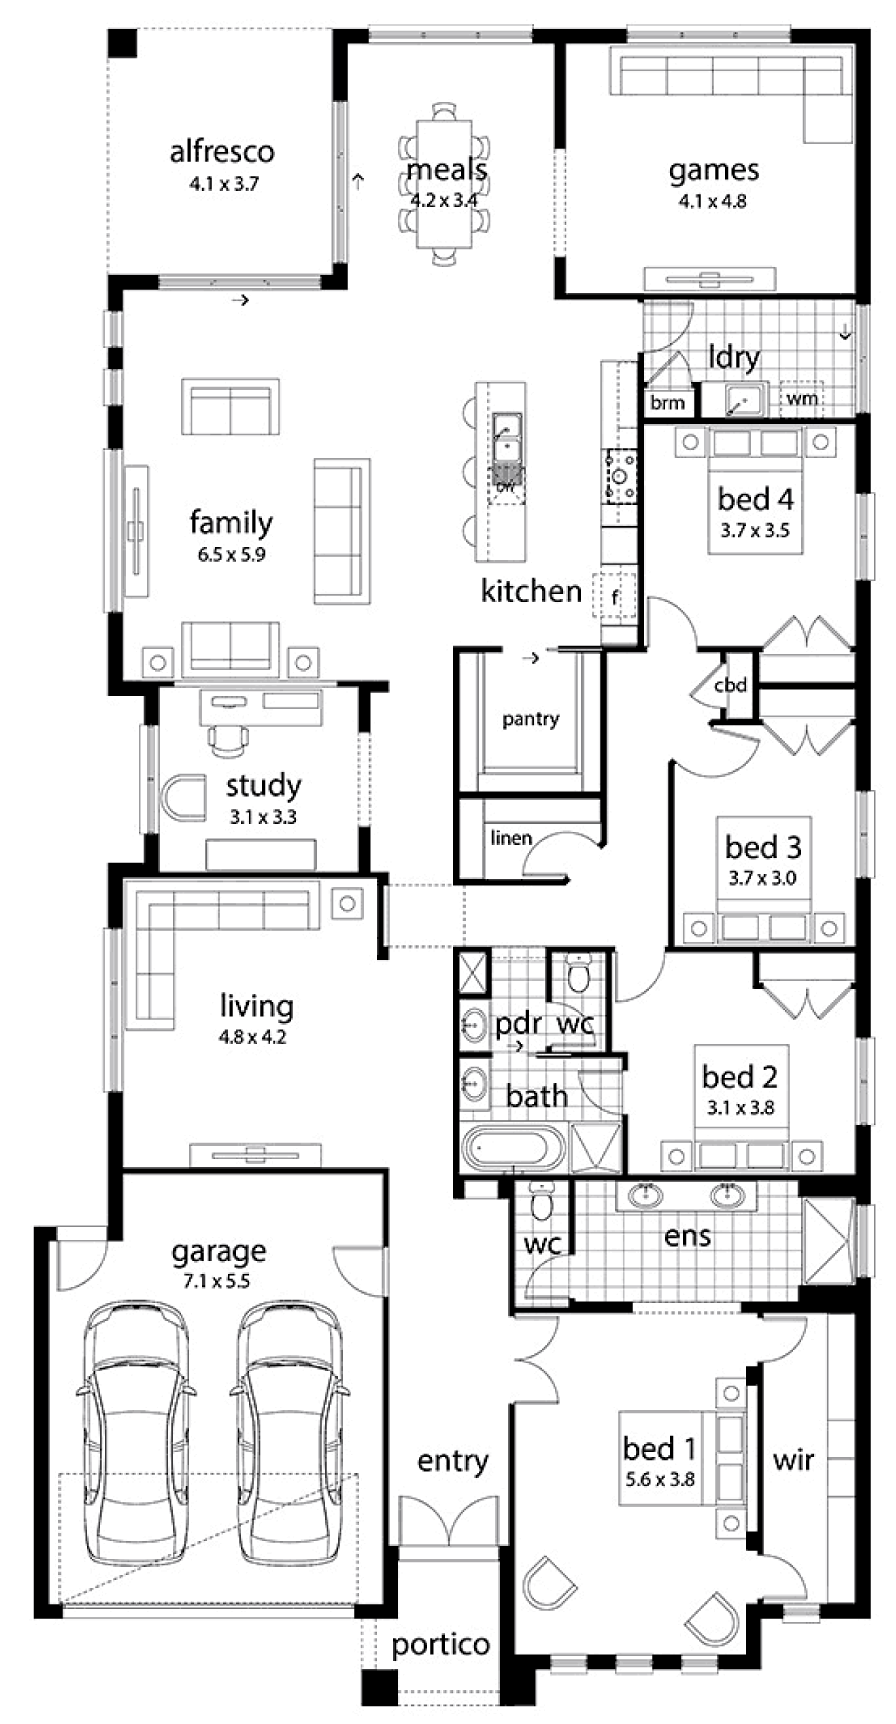 Floor Plan Friday: Large Family Home